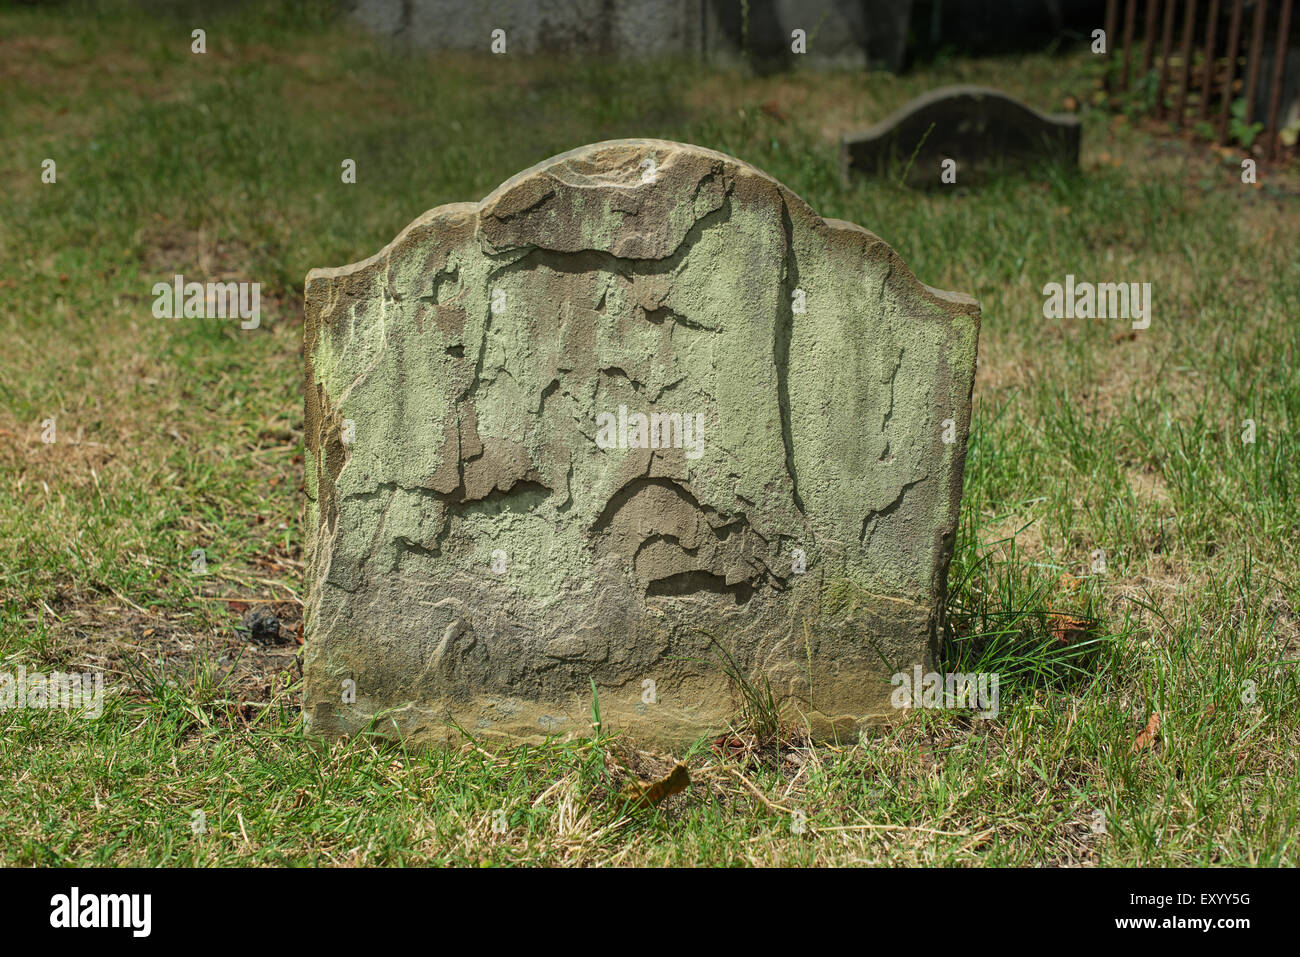 Half buried ancient weathered and flaking gravestone - Stock Image